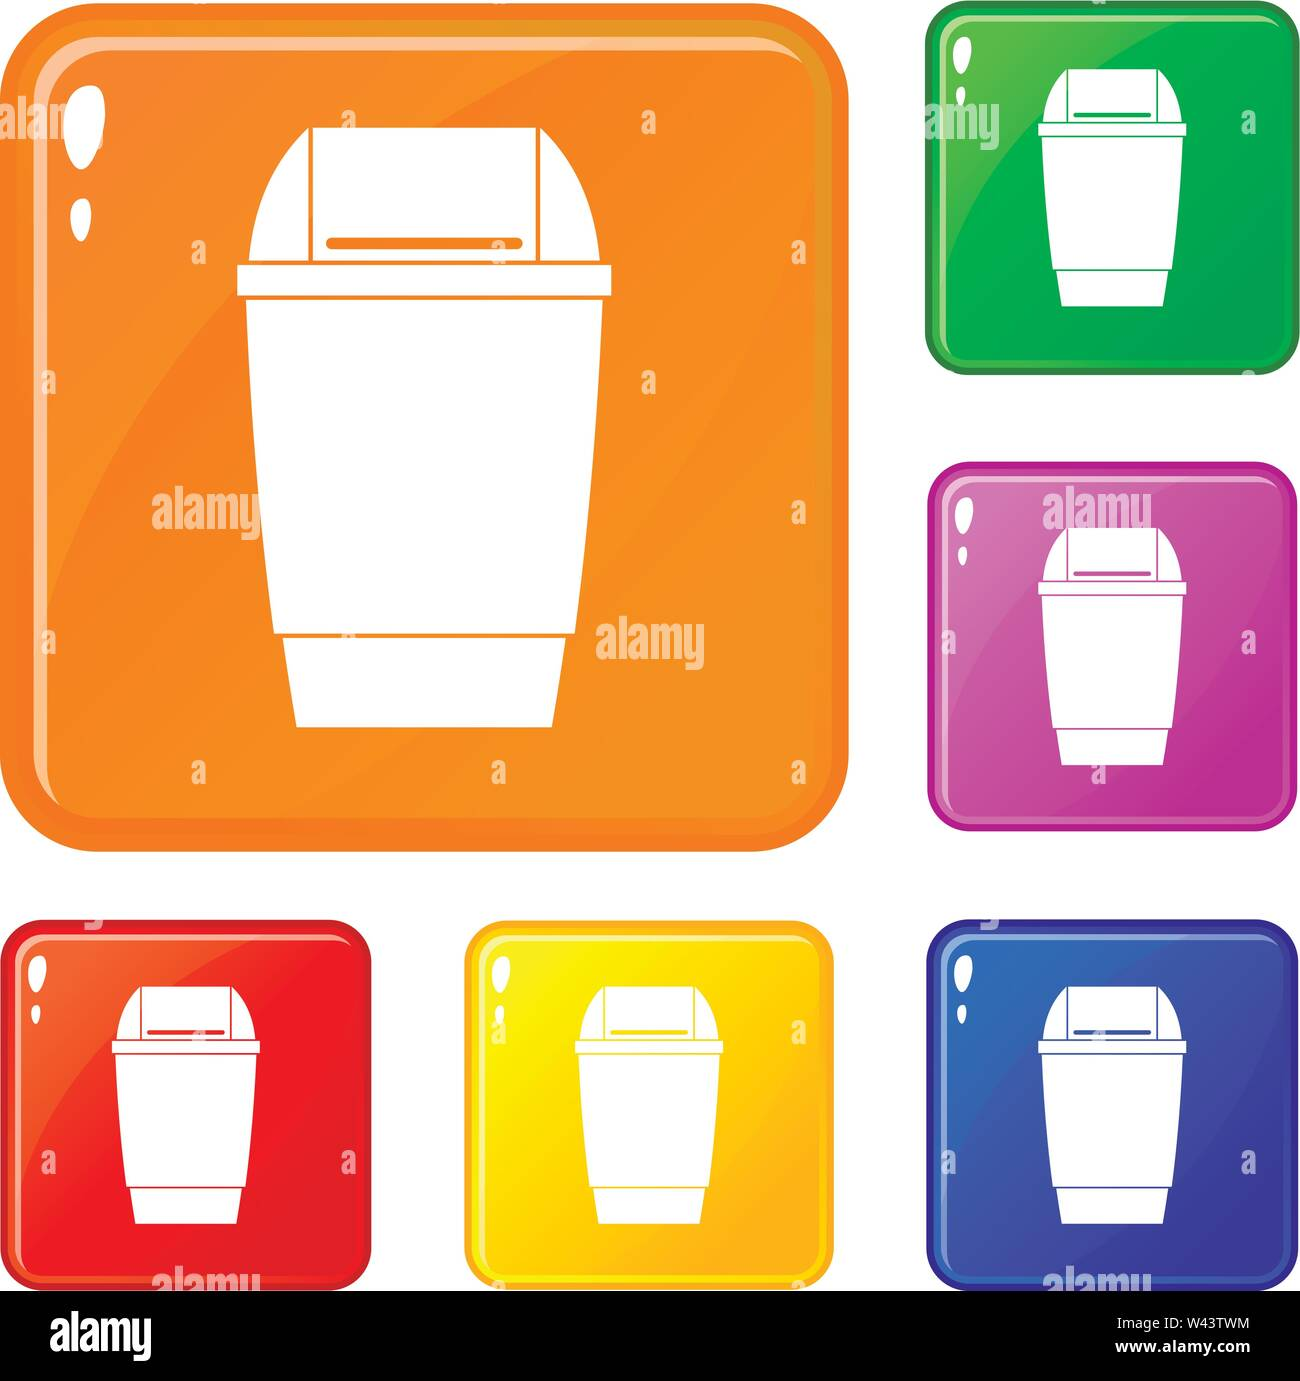 Flip lid bin icons set vector color - Stock Image